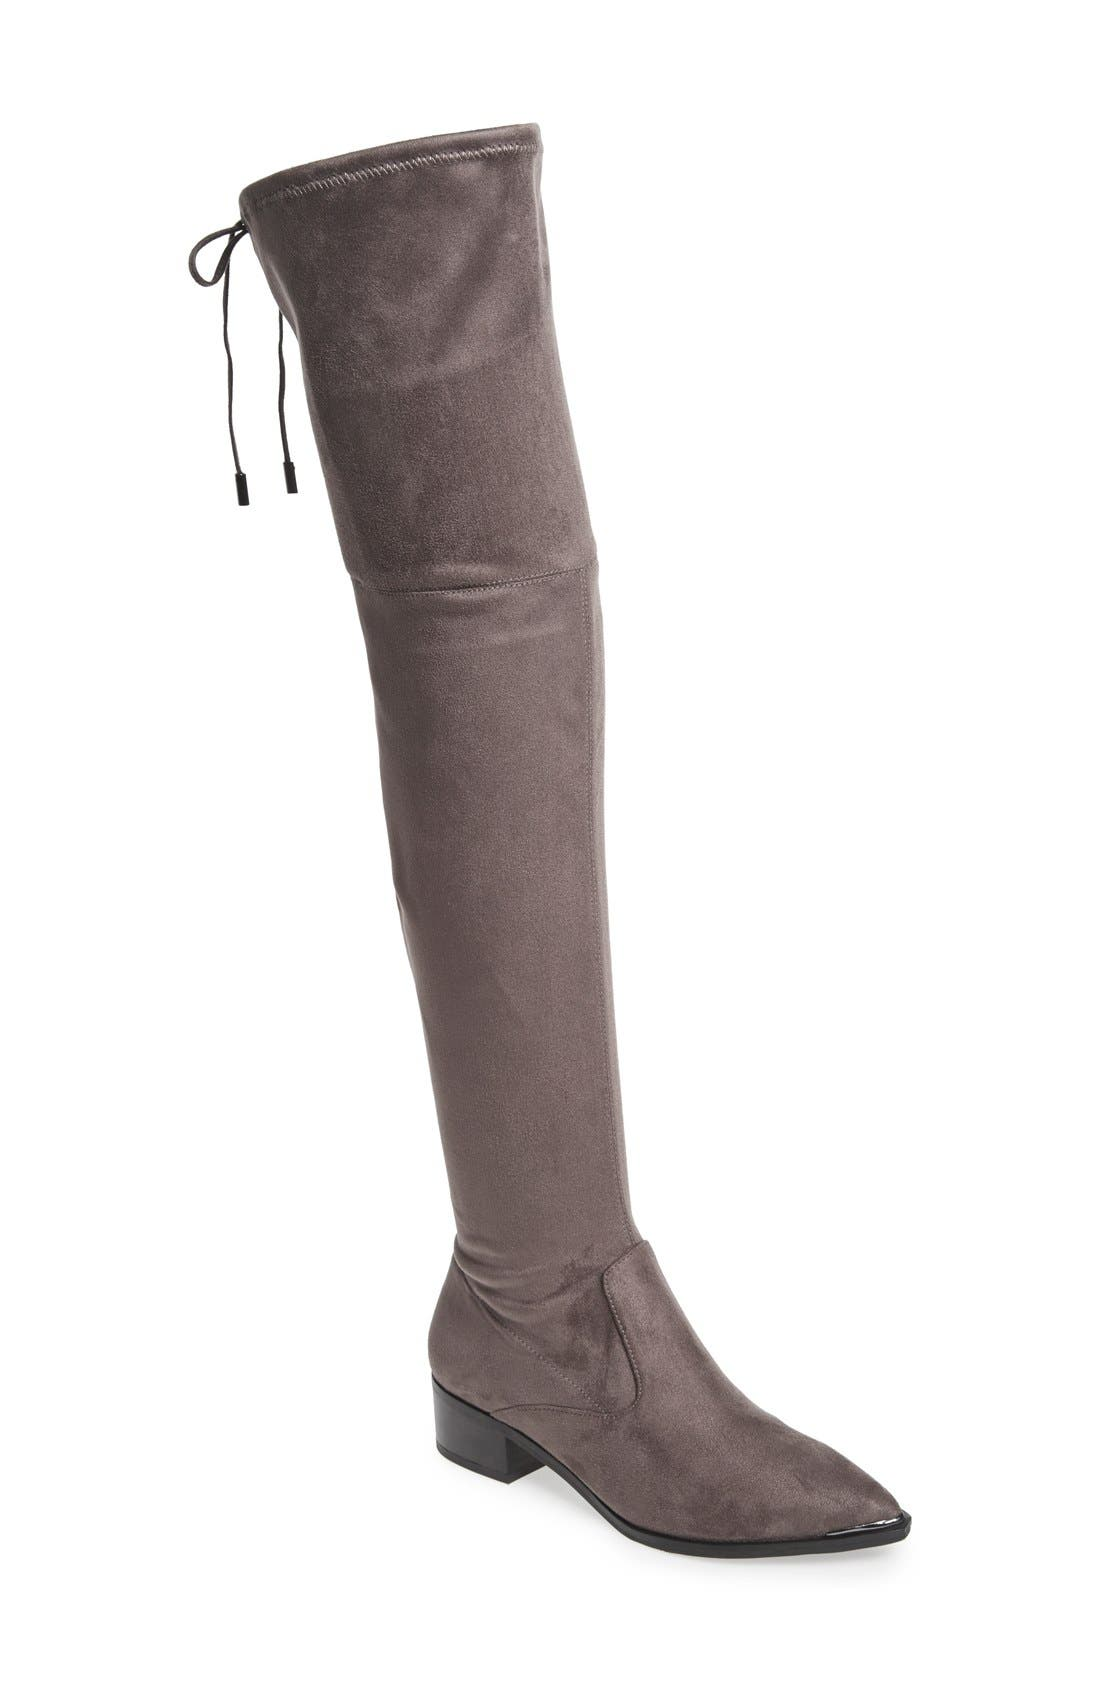 Main Image - Marc Fisher LTD Yenna Over the Knee Boot (Women)